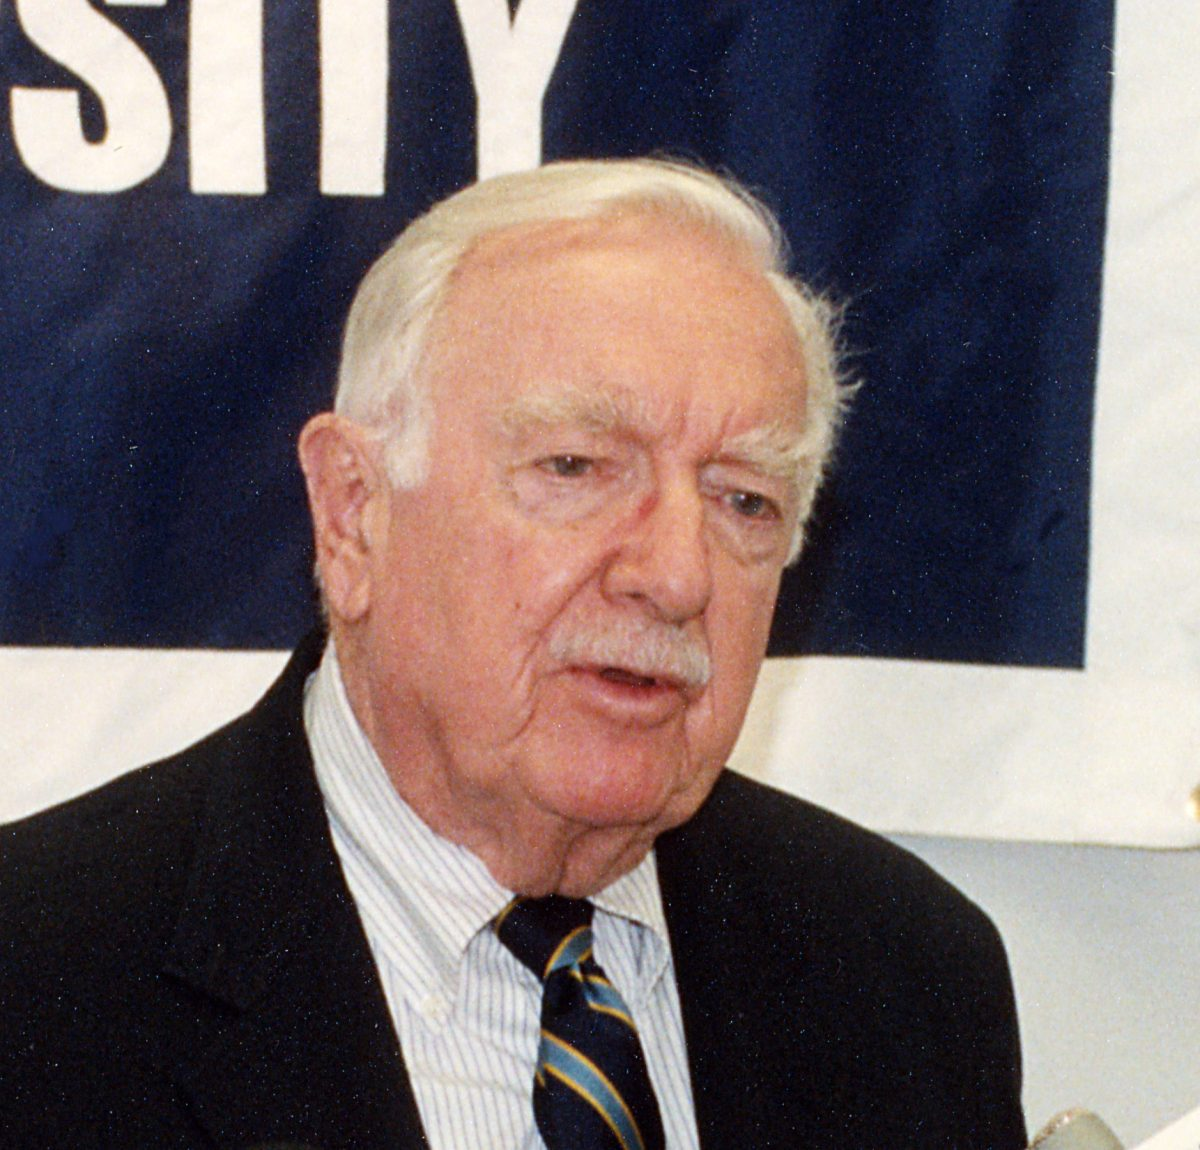 Walter Cronkite speaking at Souther Connecticut State University